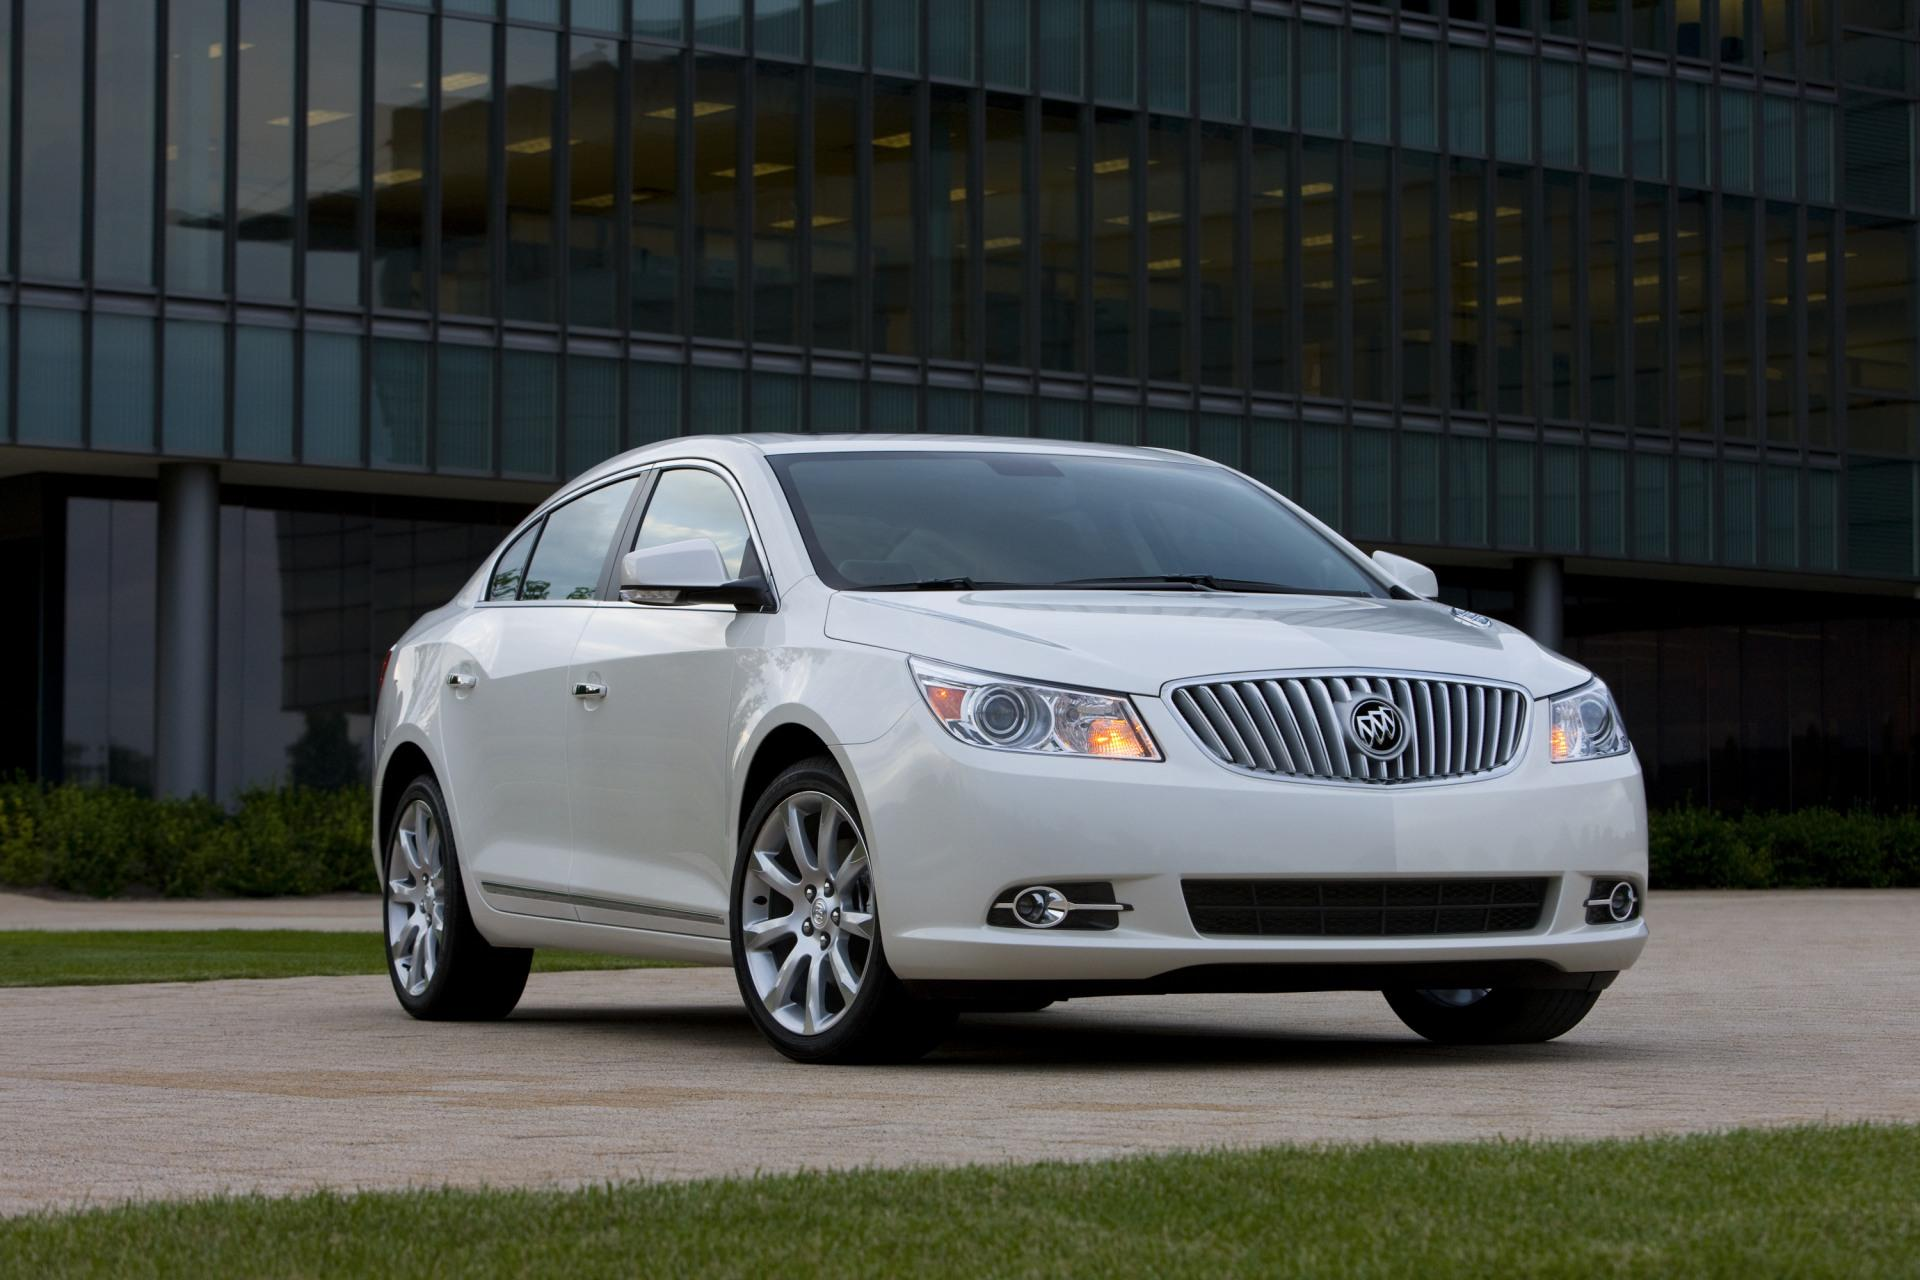 2011 Buick LaCrosse News and Information | conceptcarz.com